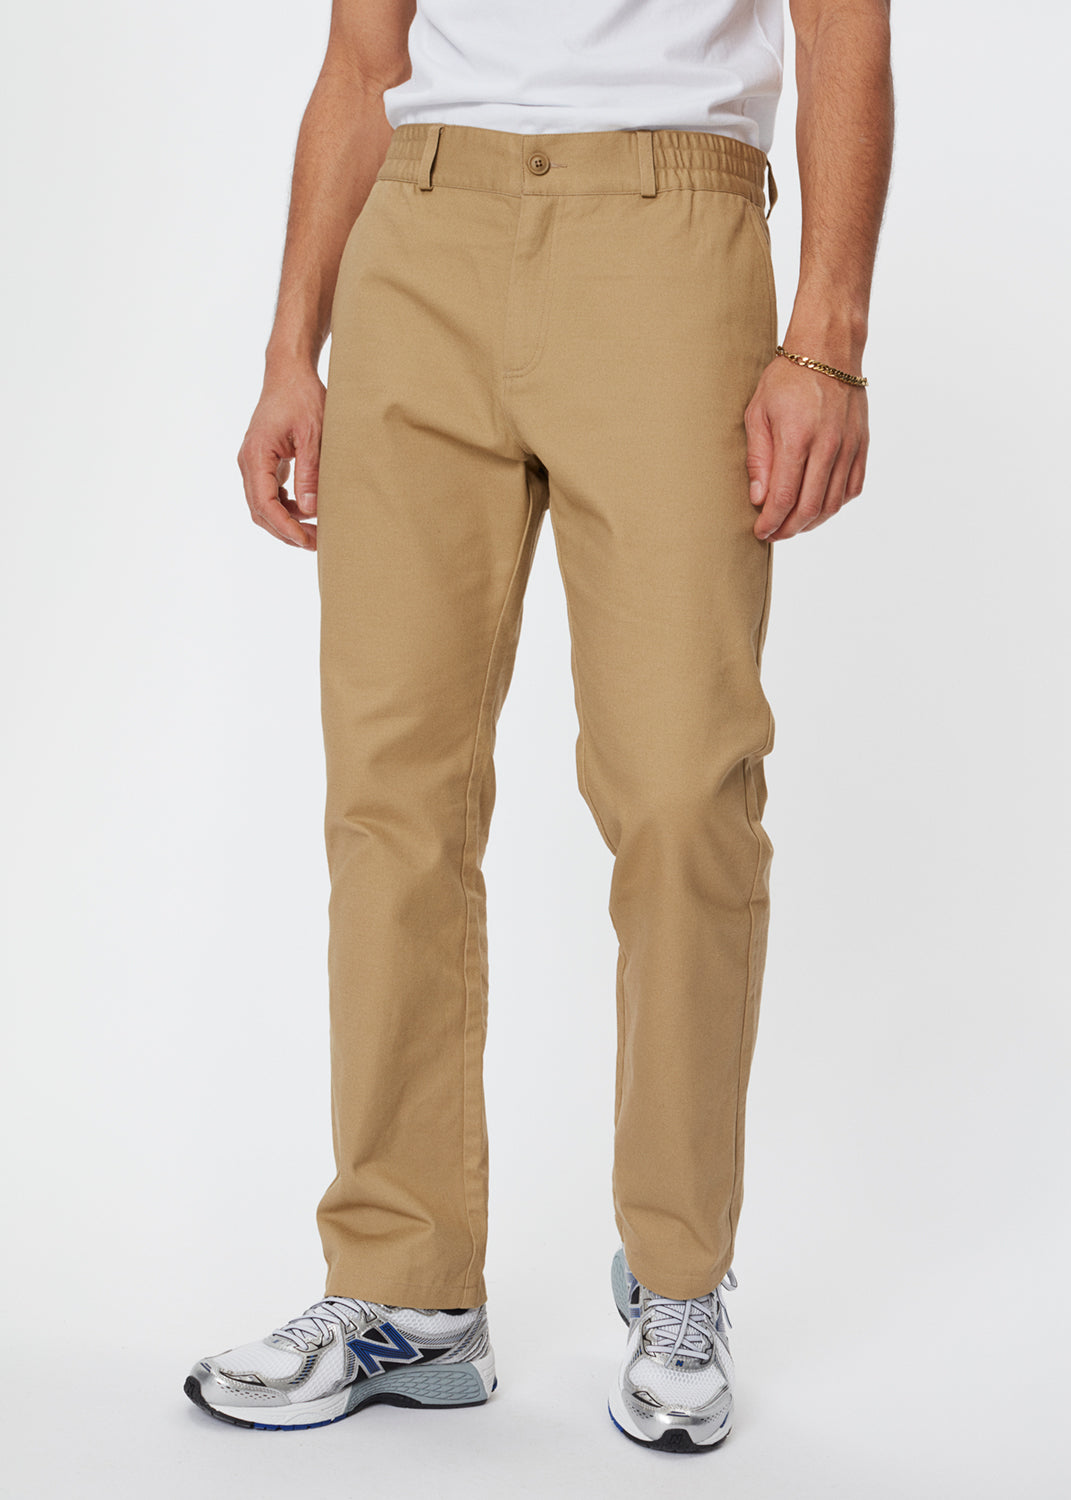 Maverick Trousers | Sand